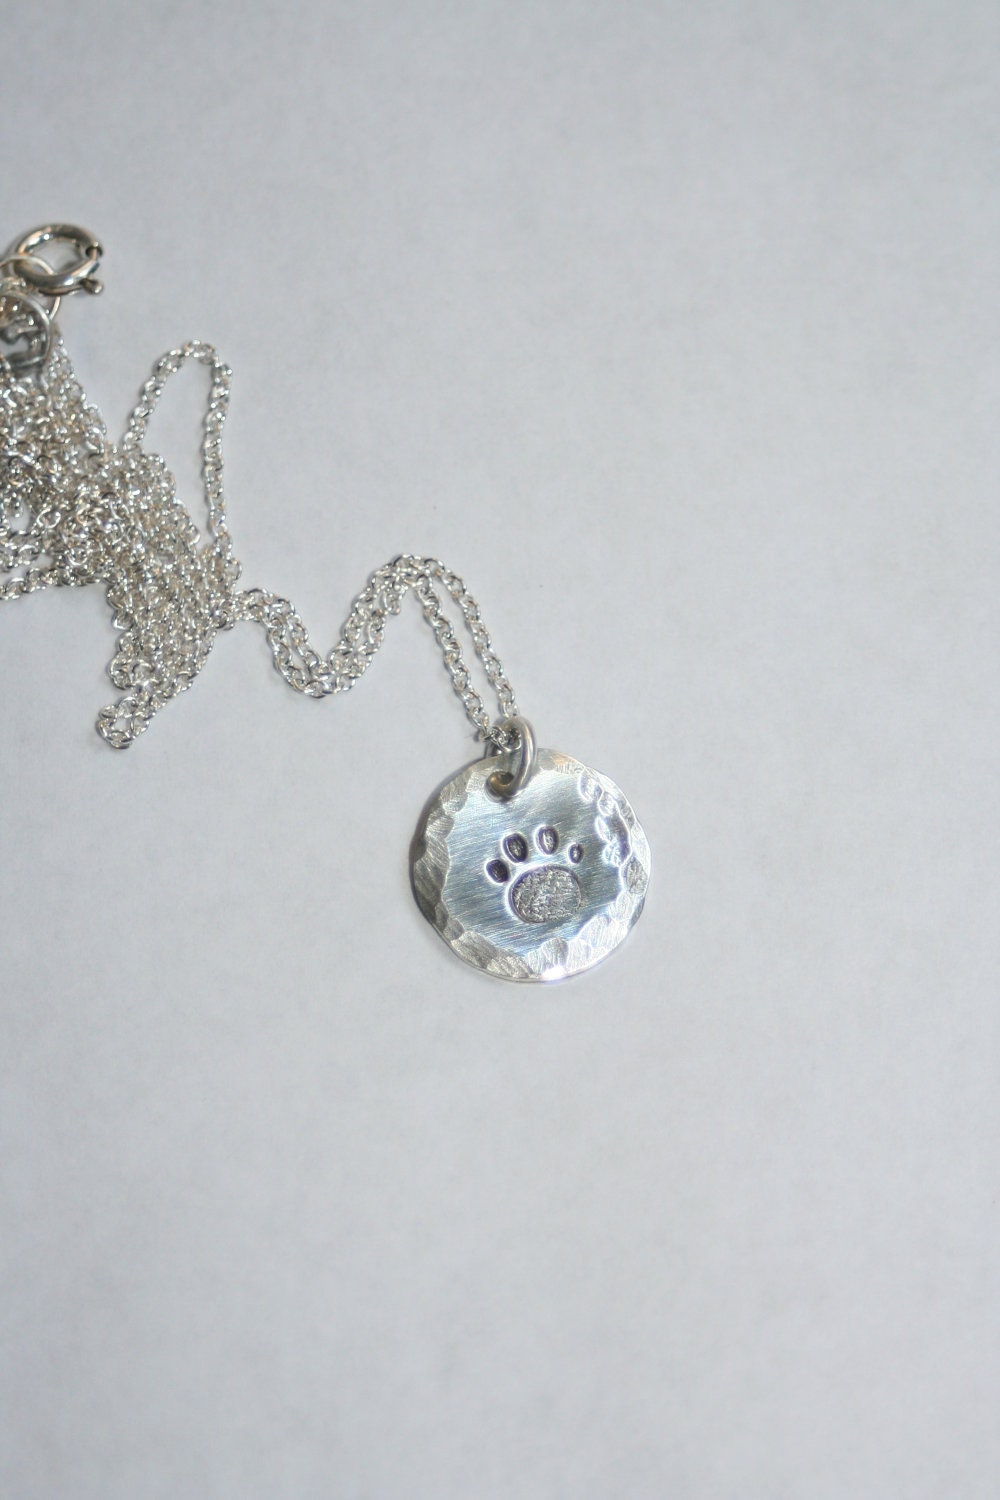 Silver Paw Cavachons: Sterling Silver Dog Paw Print Necklace/Pendant/Gift With